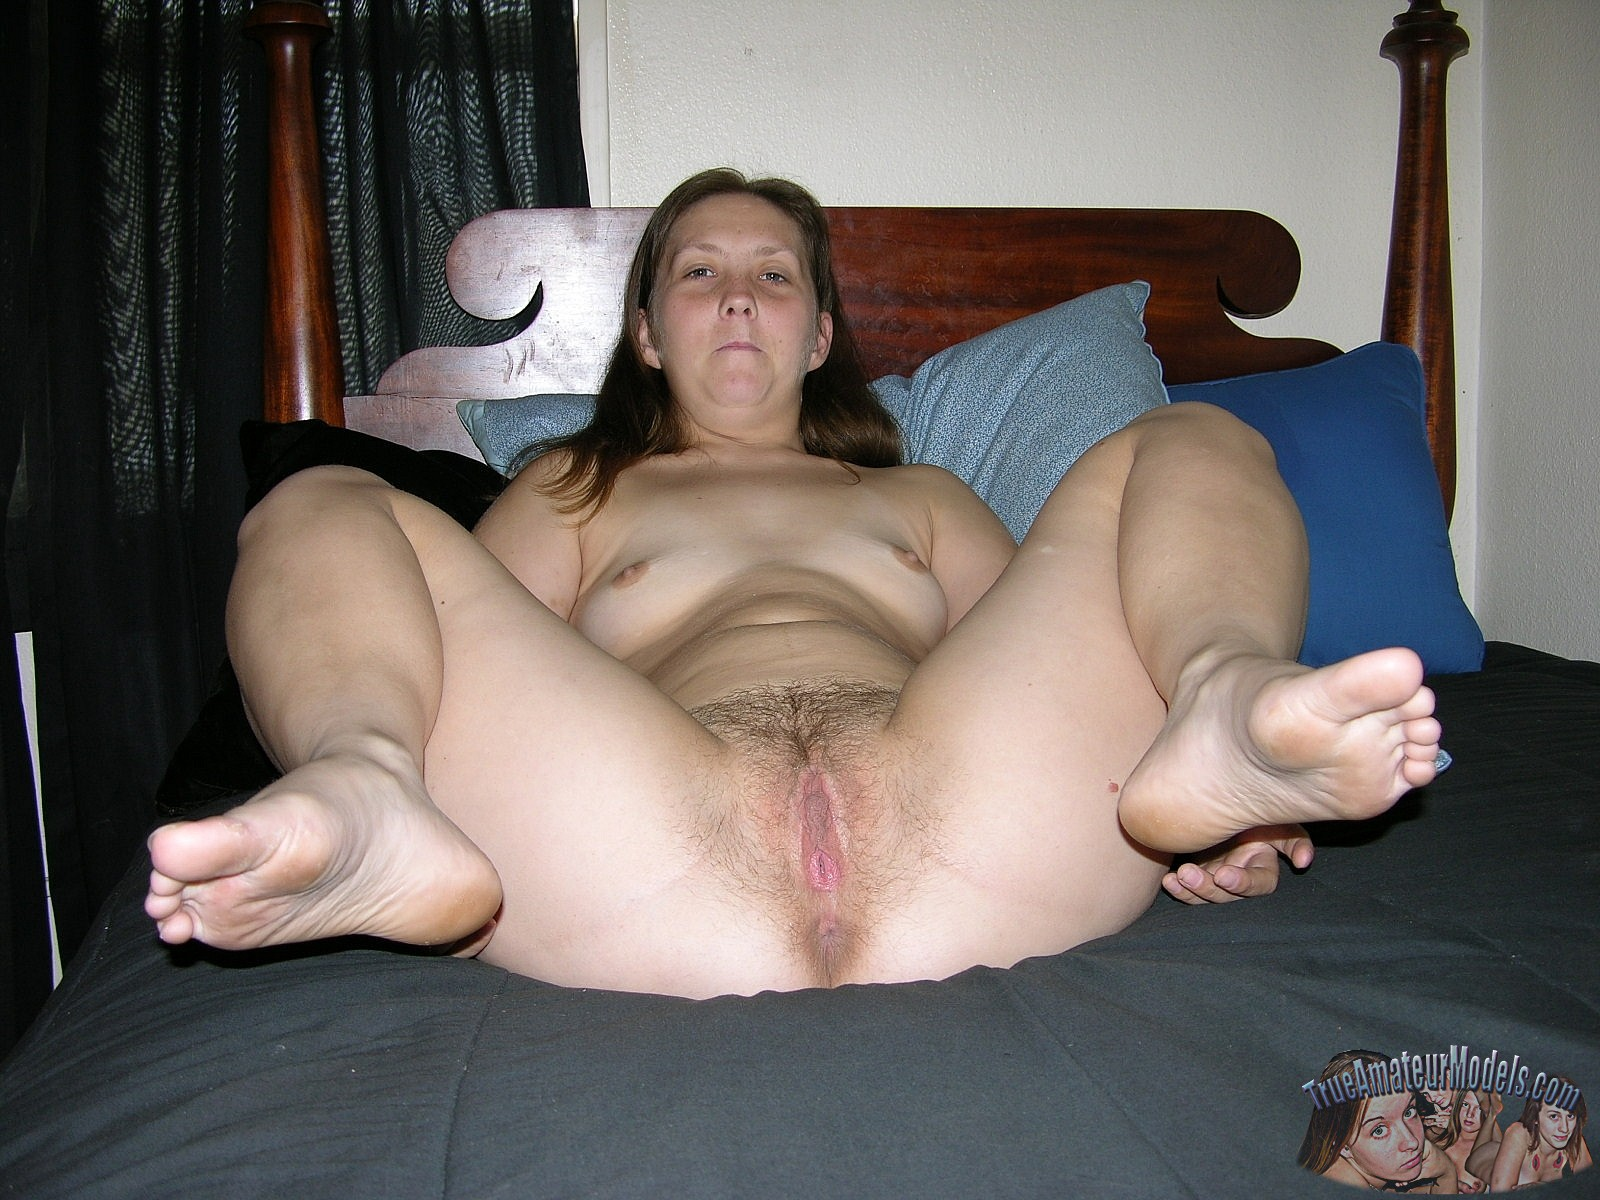 hot-redneck-naked-slut-amateur